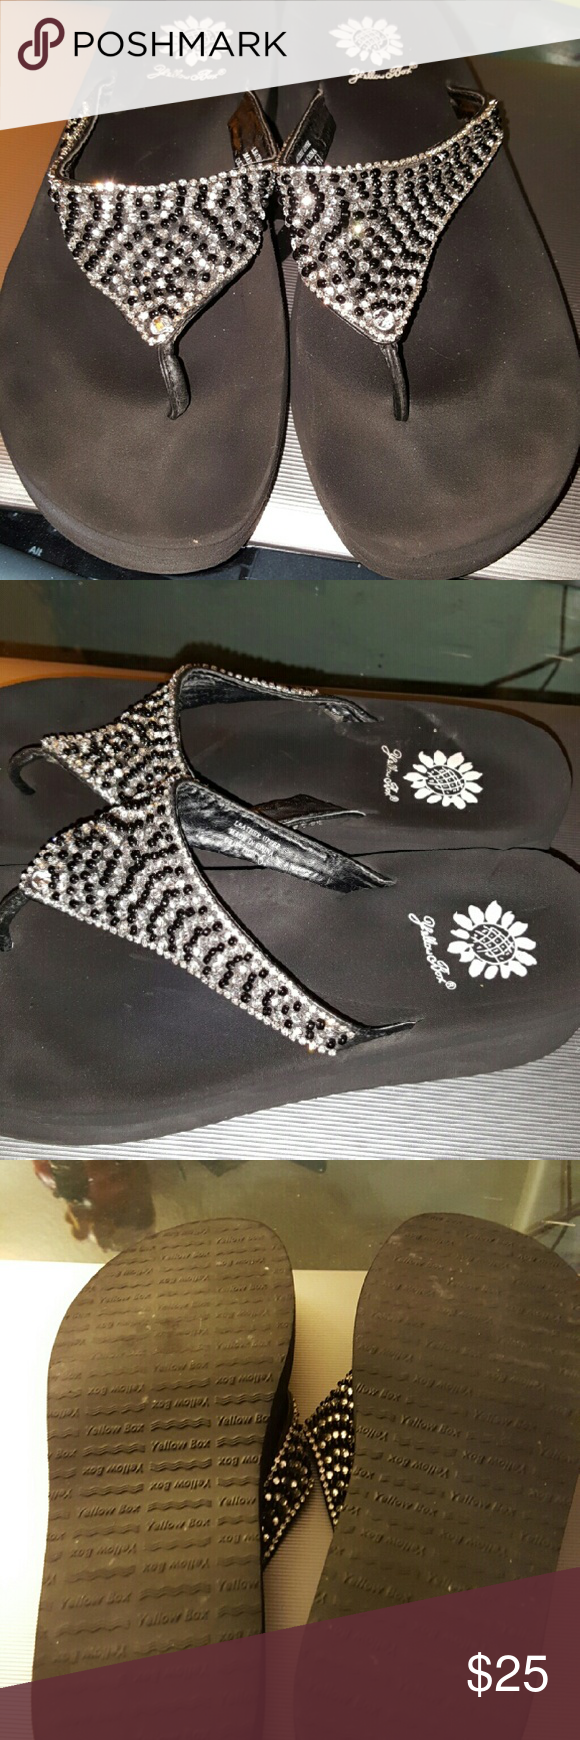 Yellow box bling sparkle flip flips sz 6.5 Yellow box sandals size 6 and a half West black silver and clear beading in great used condition. Worn once or twice were too small. Comes from a non-smoking very clean home. Yellow Box Shoes Sandals